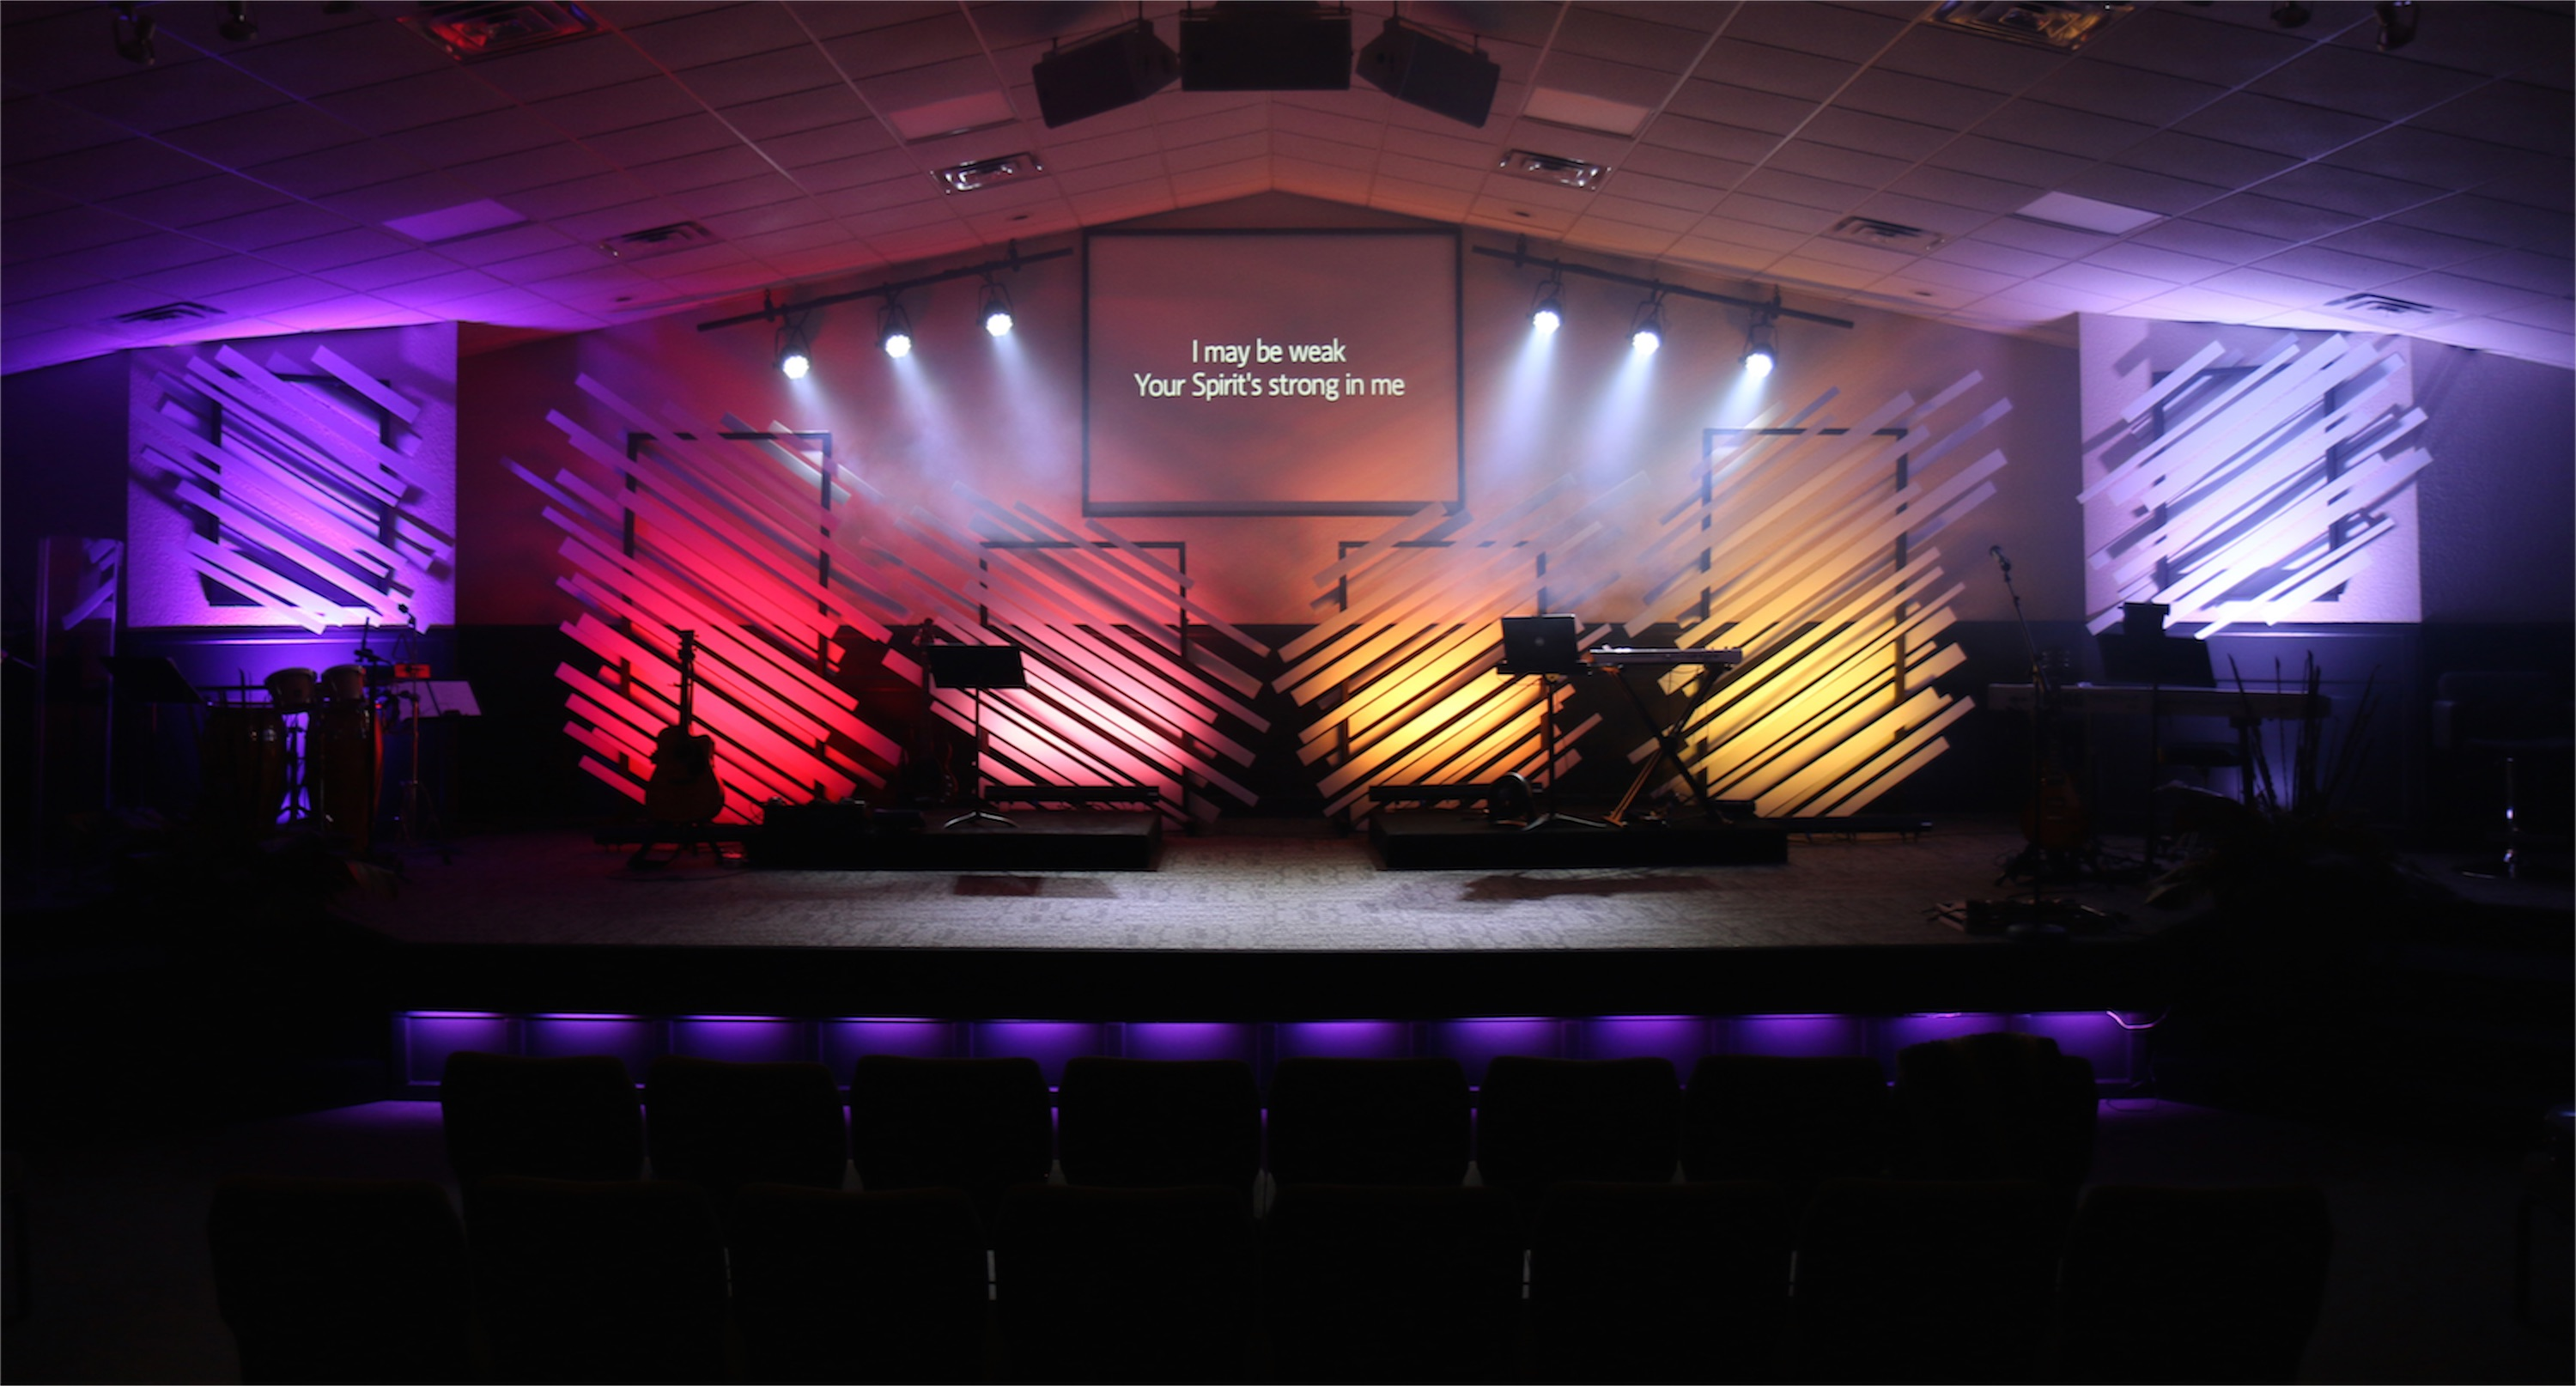 Touchstone church stage design ideas for Church stage design ideas